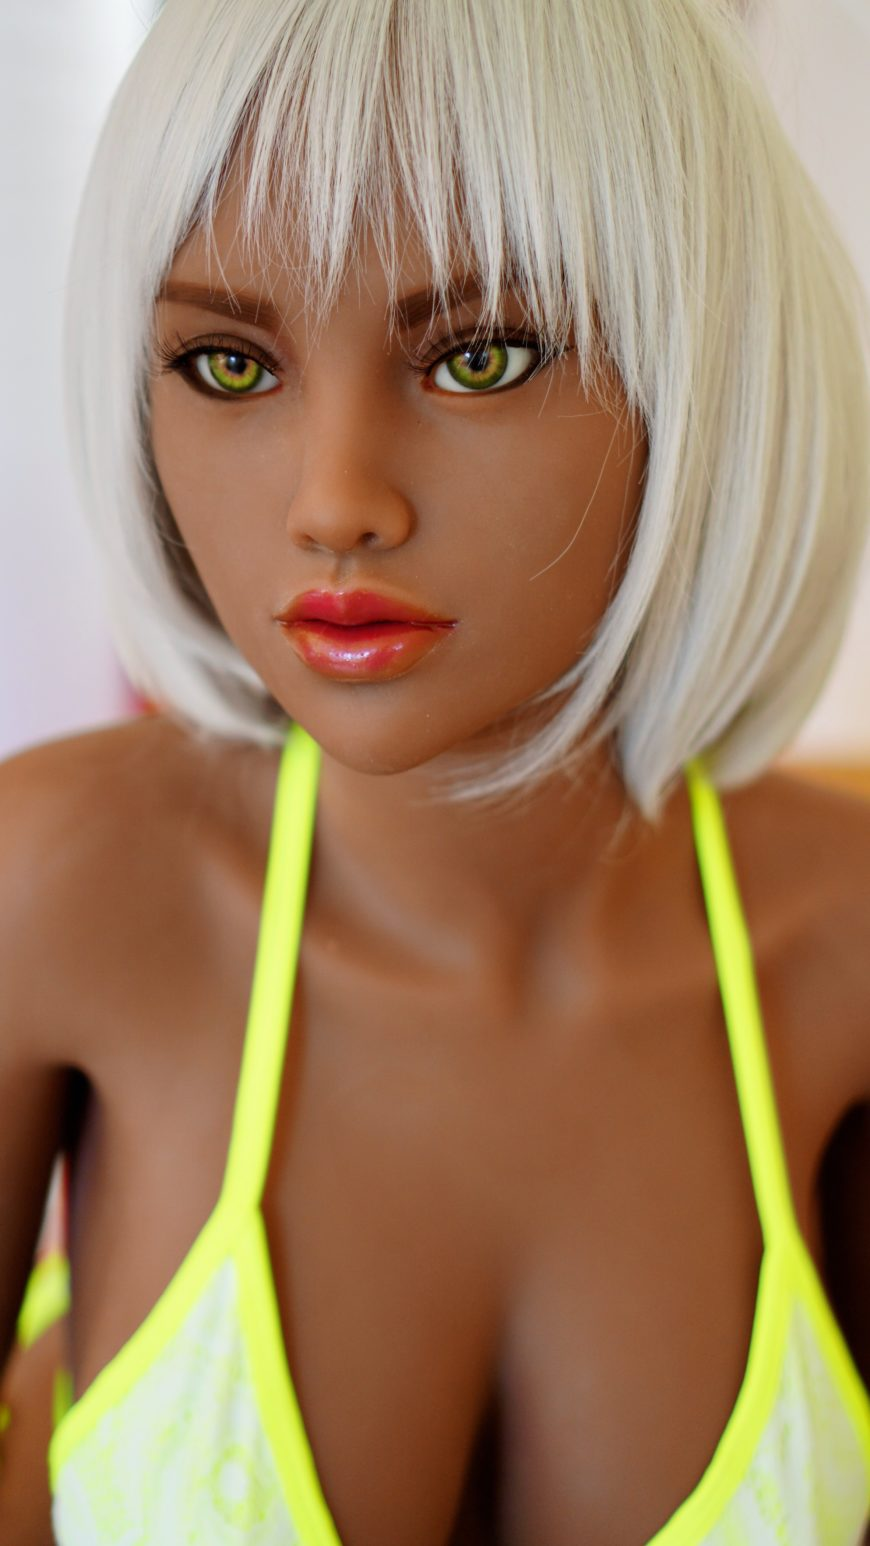 Gilly-Sex-Doll-from-Dirty-Knights-Sex-Dolls-posing-naked-1 (14)